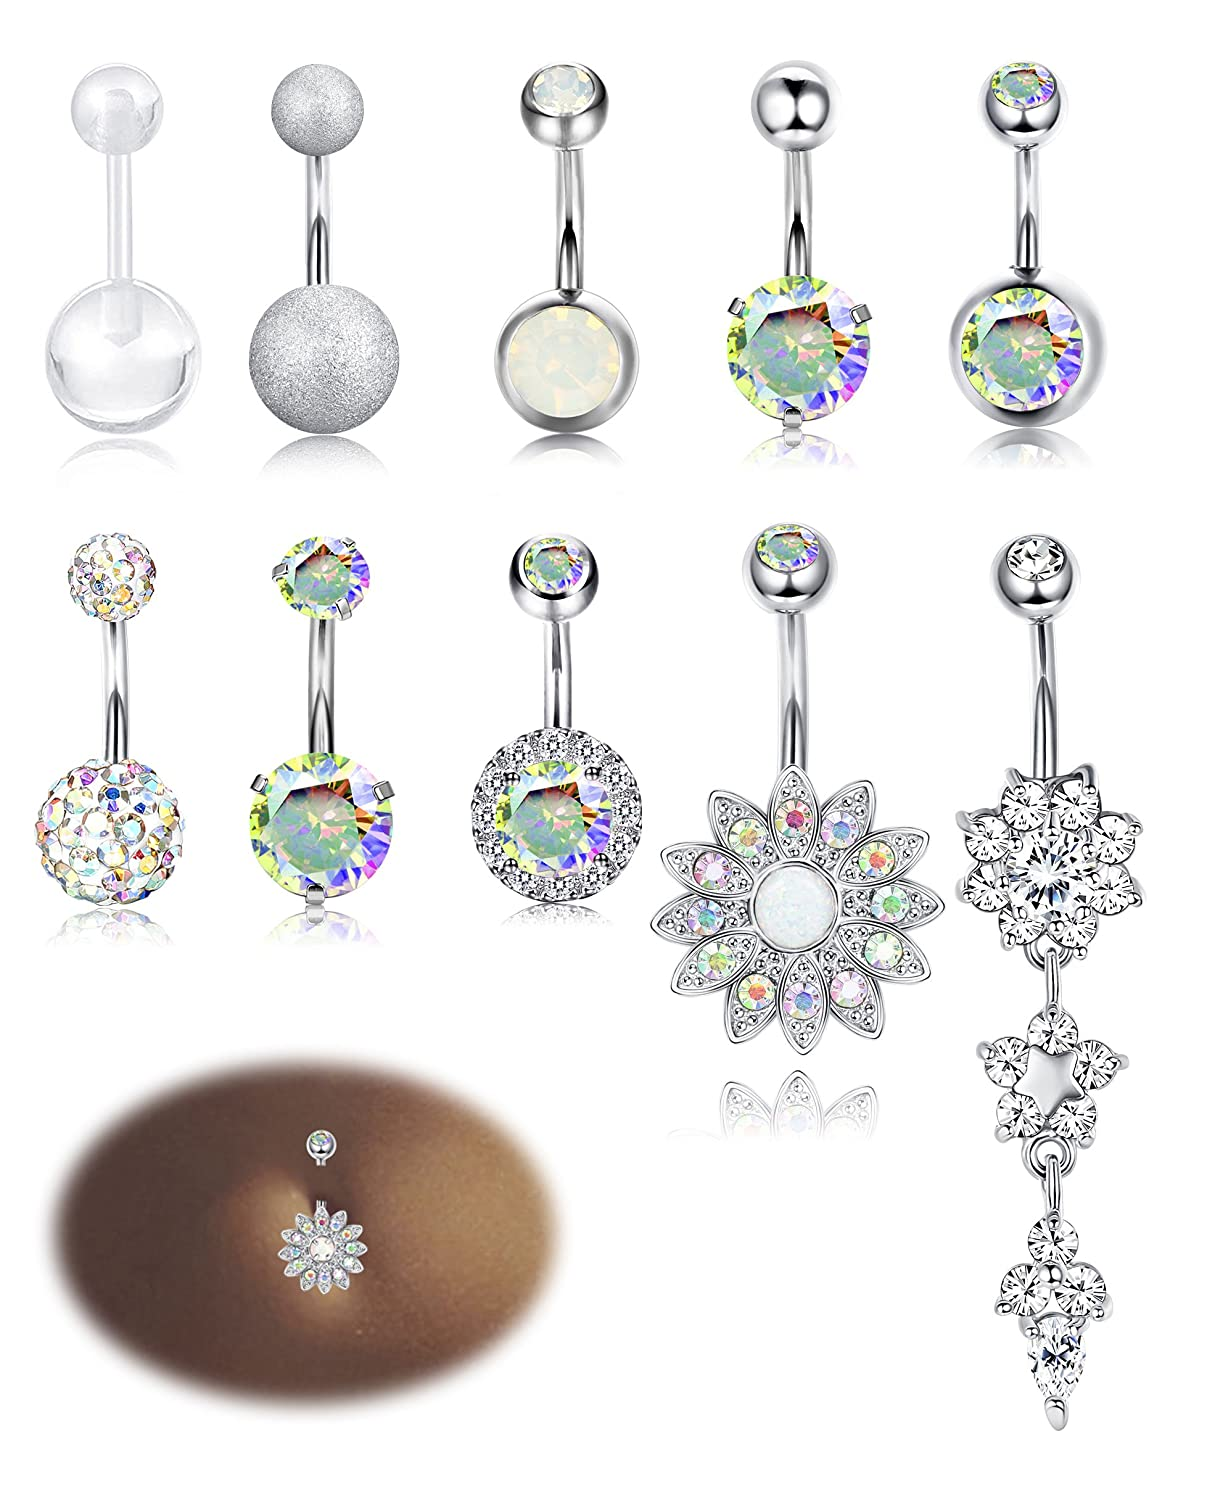 Milacolato 10-12PCS Stainless Steel Belly Button Rings for Womens Girls Navel Rings Barbell Dangle Acrylic CZ Body Piercing Jewelry QT-L-P0002-a